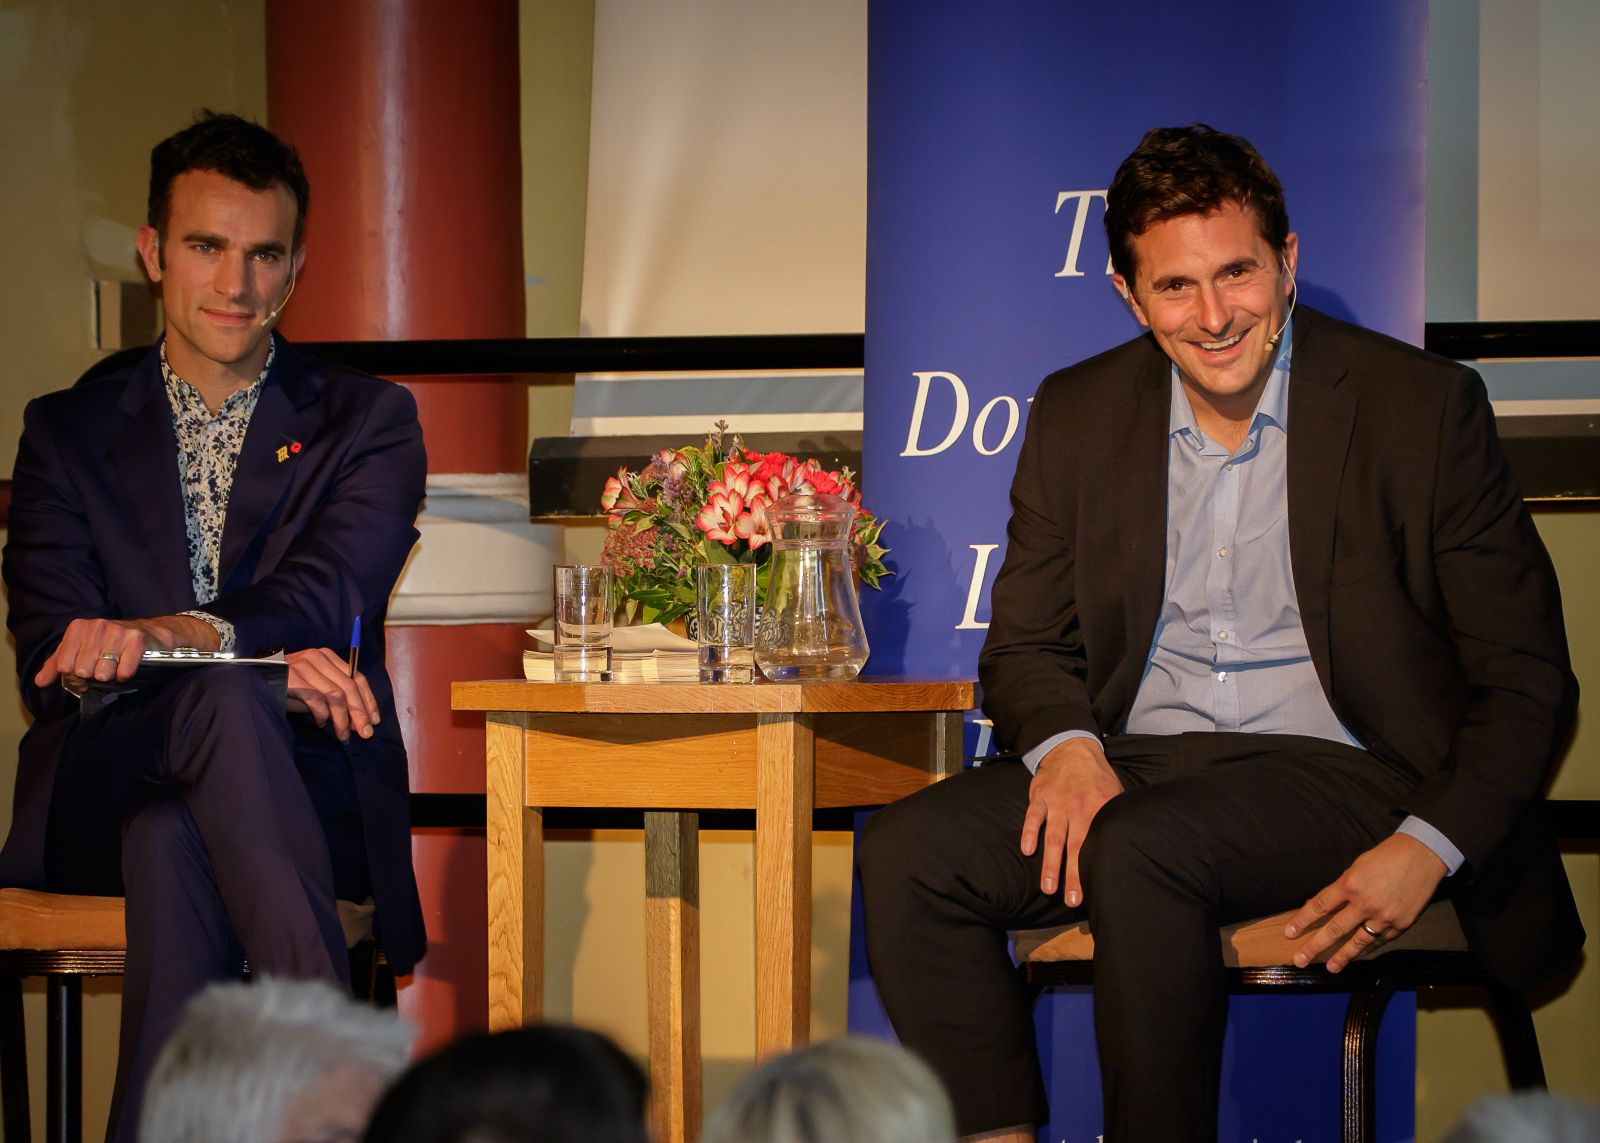 Capt Johnny Mercer MP in conversation with Steve Harris